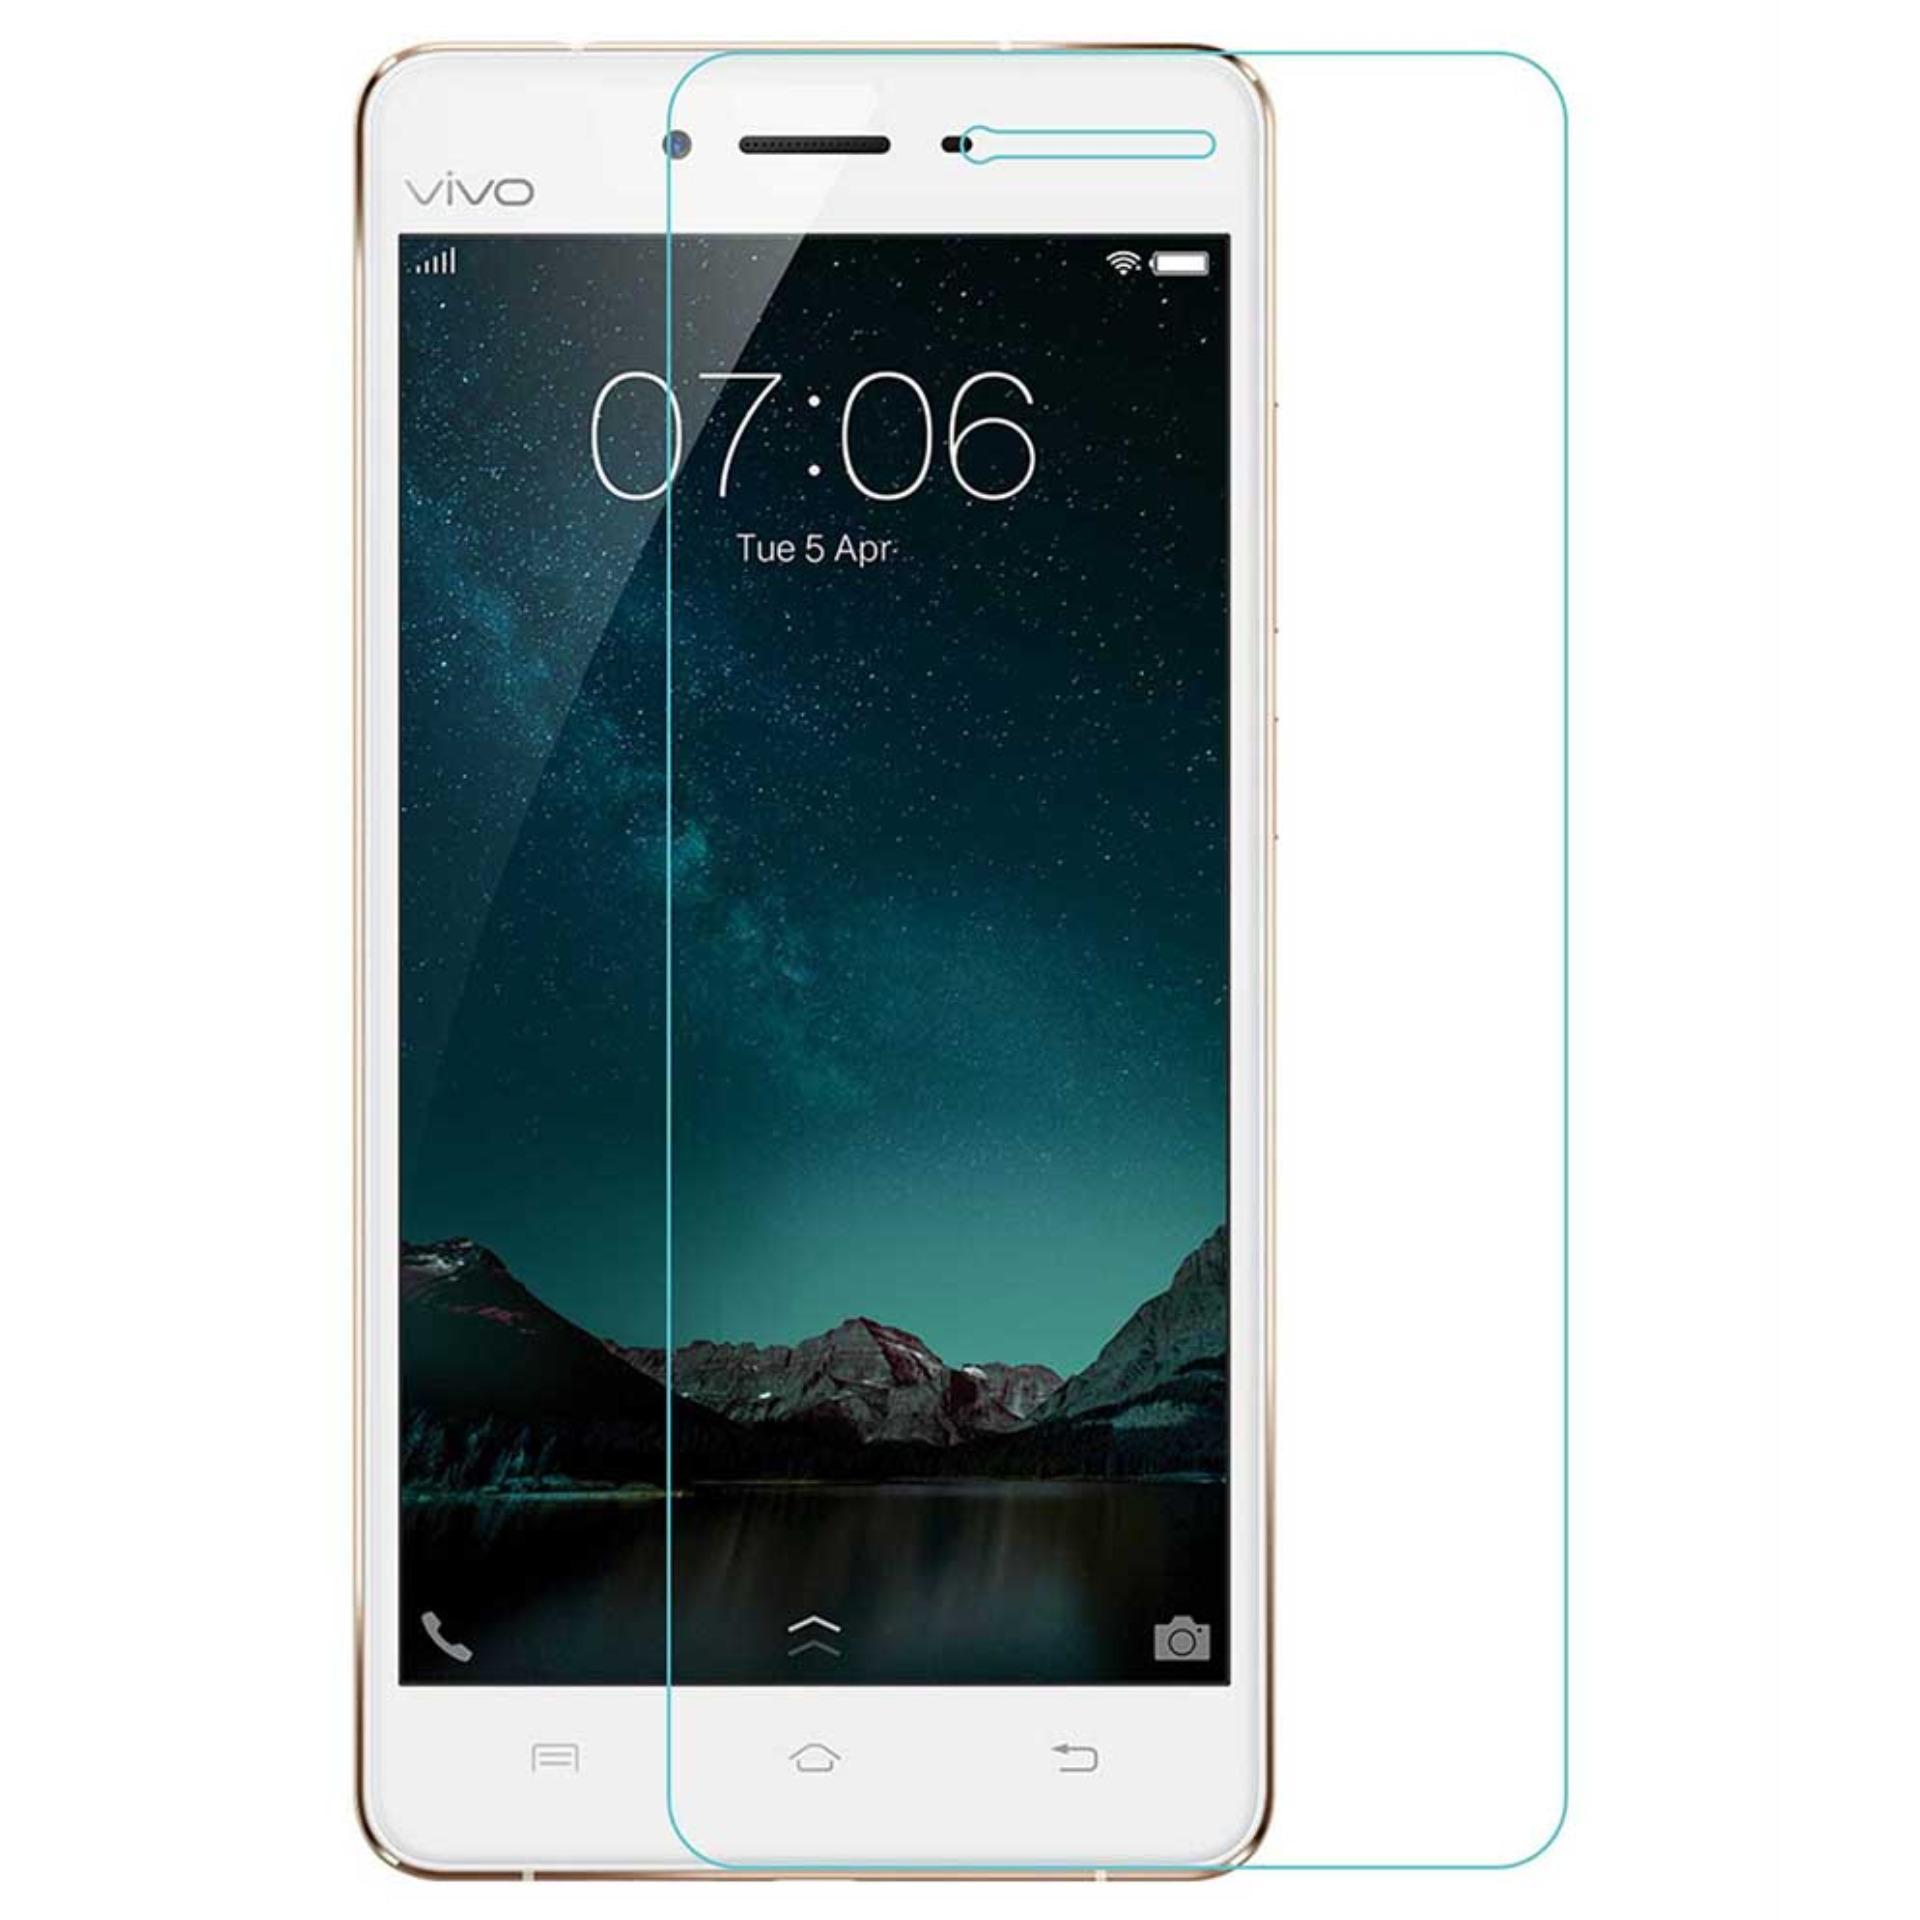 Vn Vivo V3 Tempered Glass 9H Screen Protector 0.32mm - Transparan